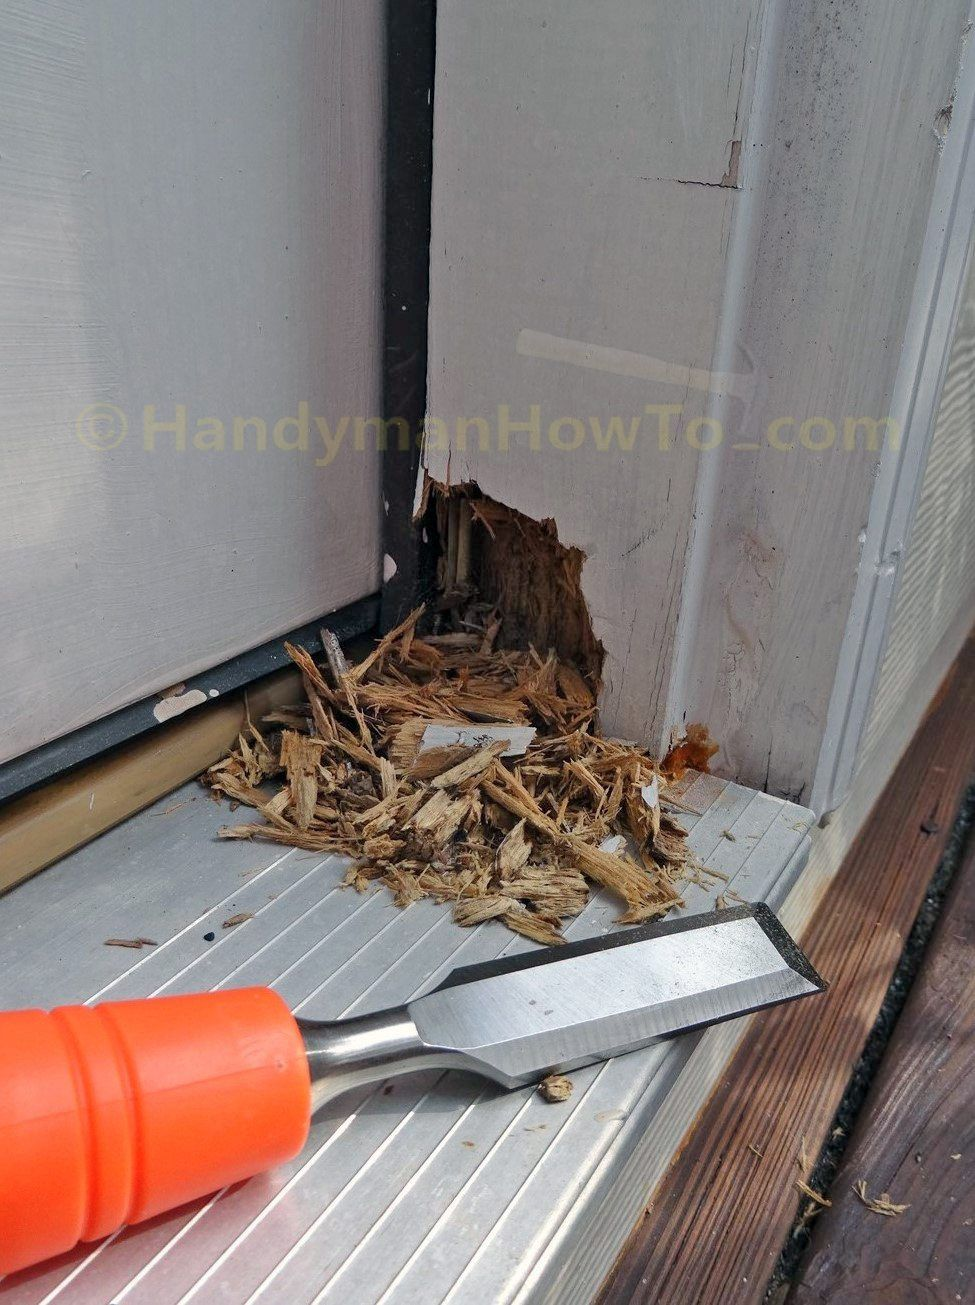 How To Repair A Rotted Exterior Door Frame By Sawing Out The Rotted Section And Splicing A New Section Diy Home Repair Exterior Door Frame Diy Home Improvement